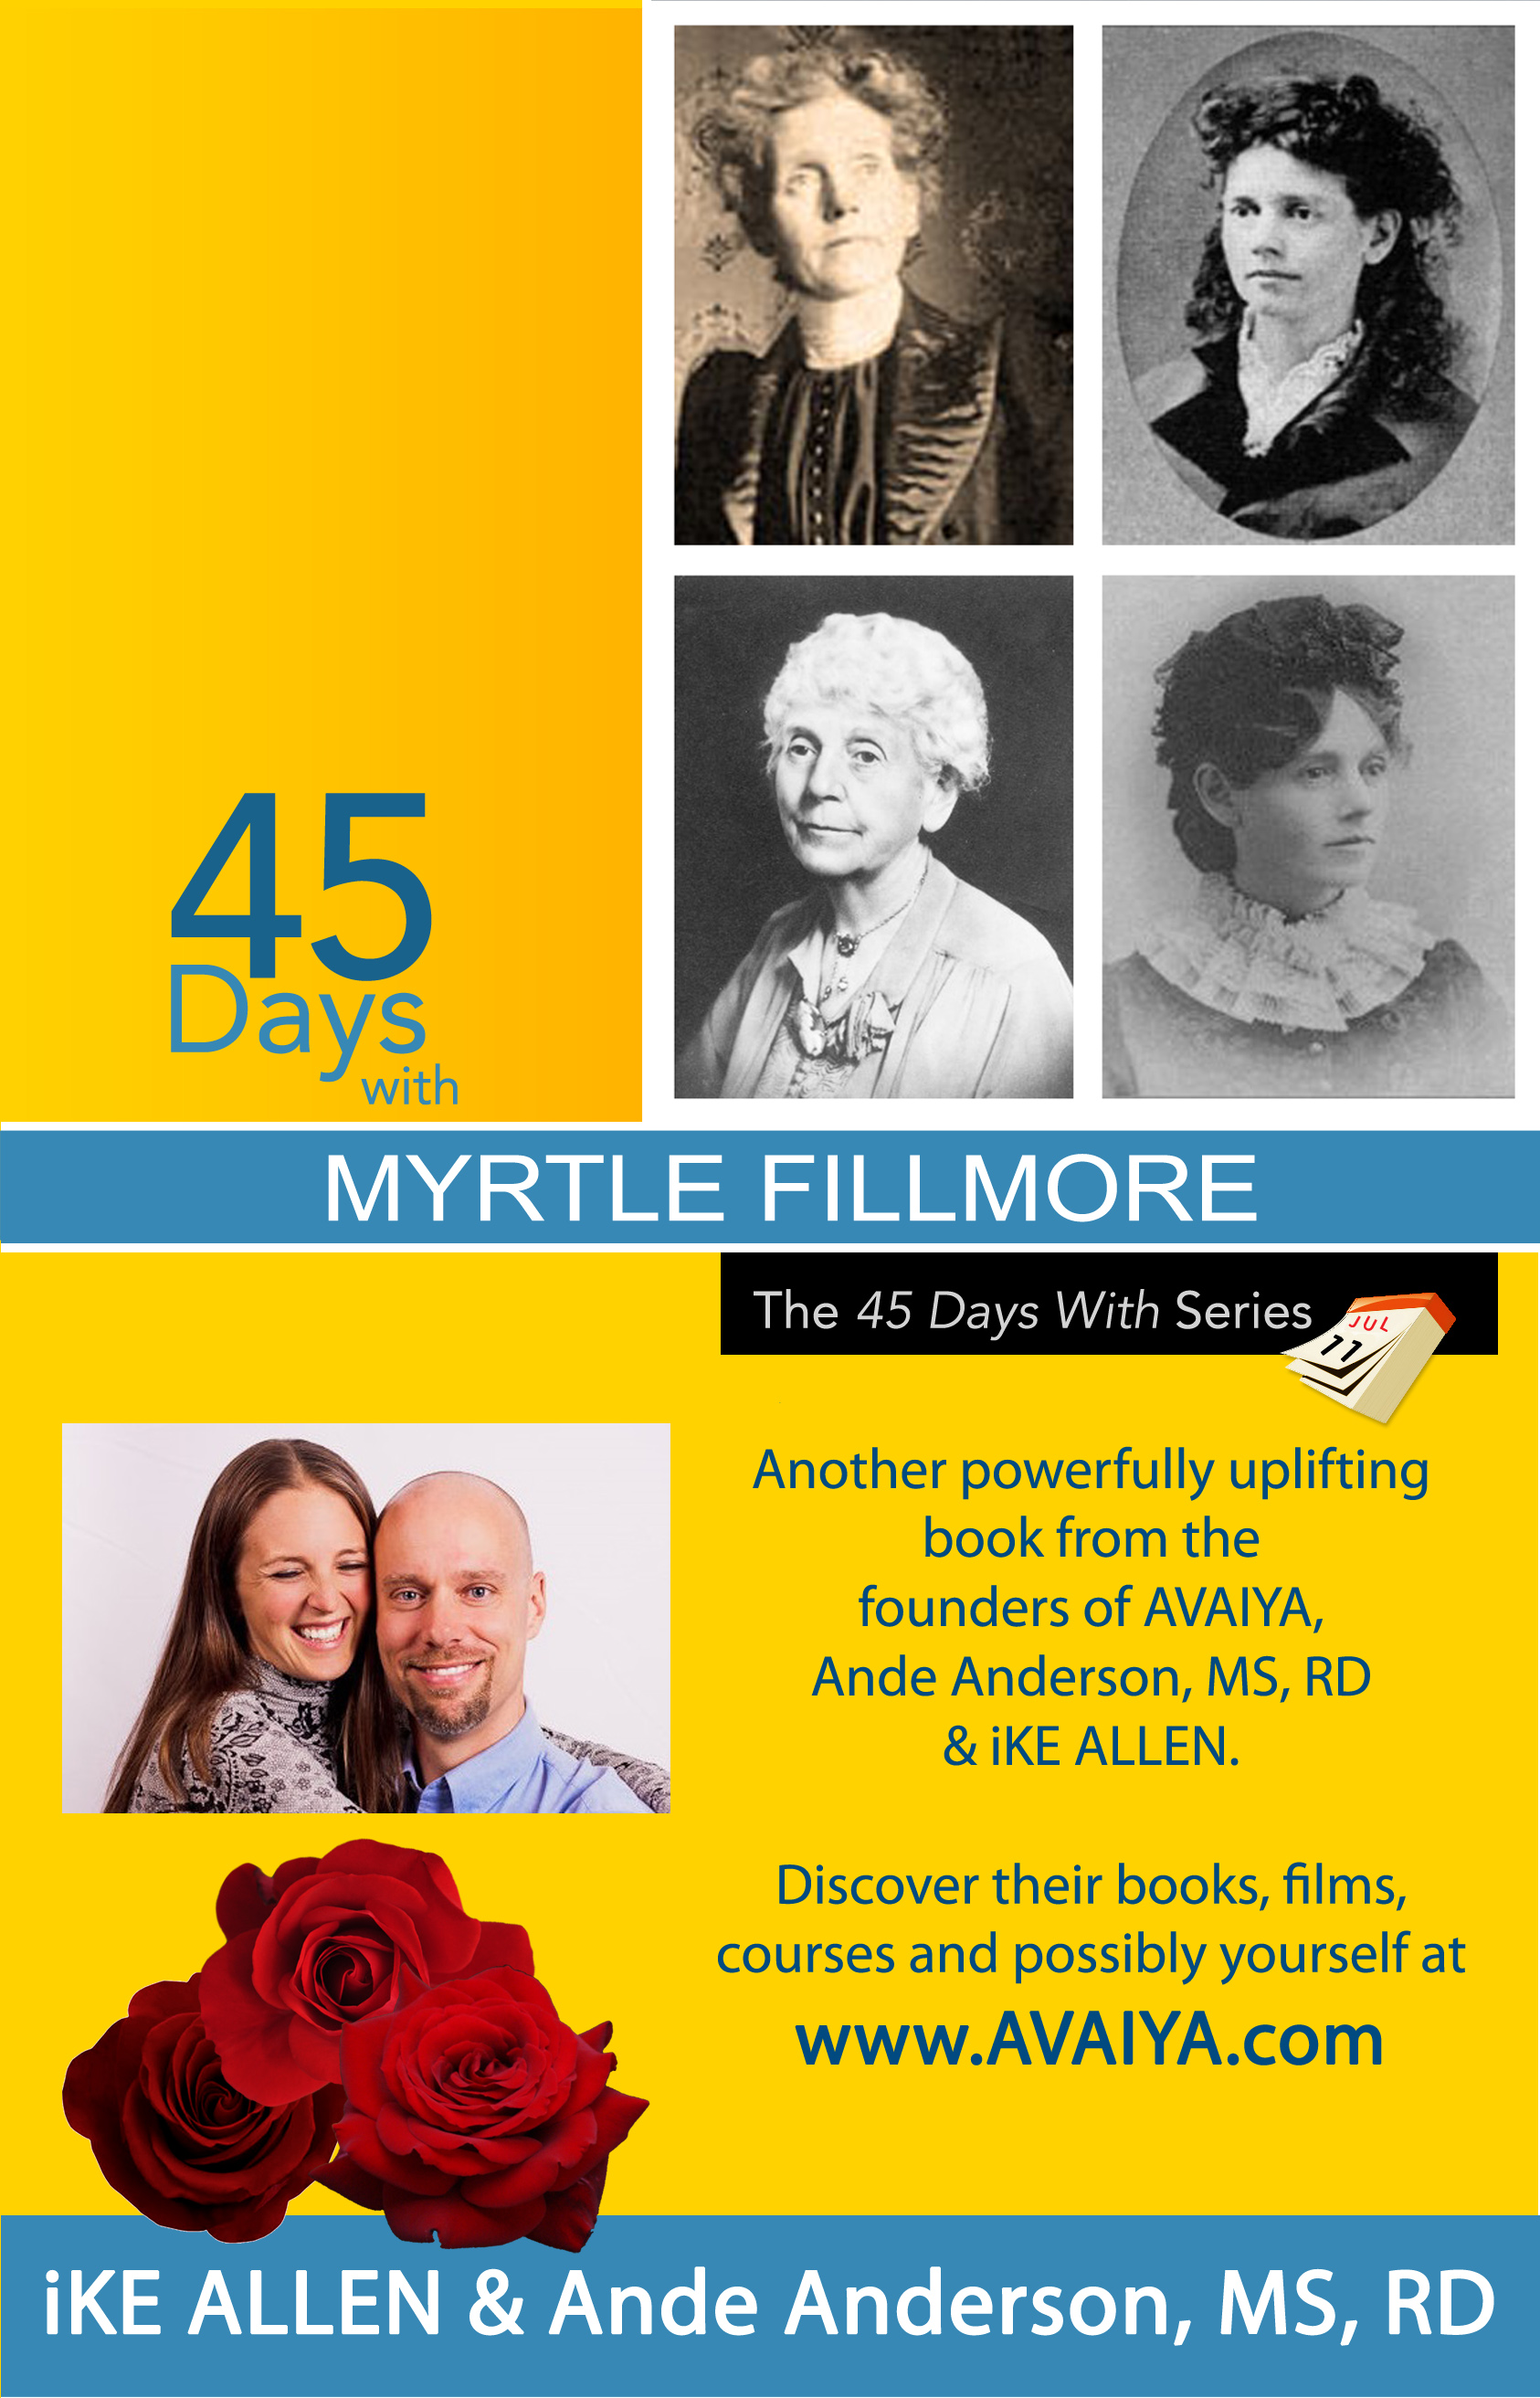 45 Days with Myrtle Fillmore